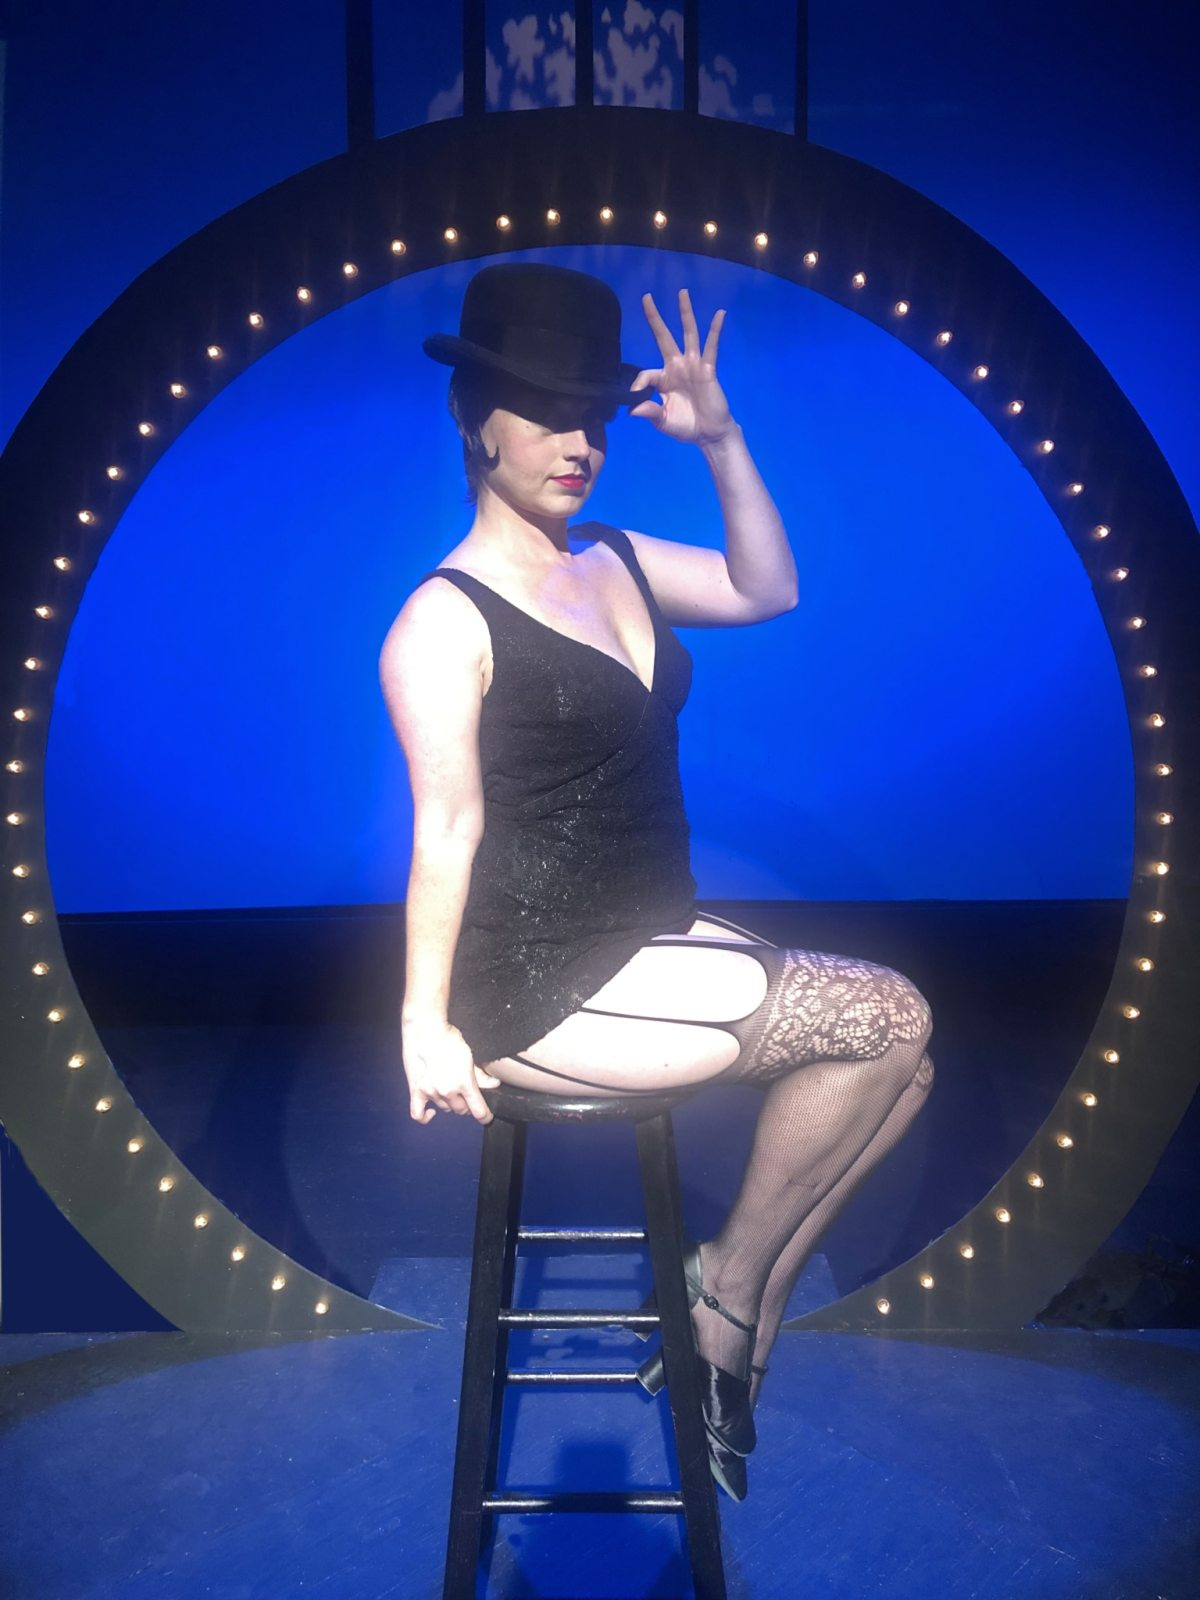 Opening January 23, Cabaret takes the stage at Virginia Samford Theatre